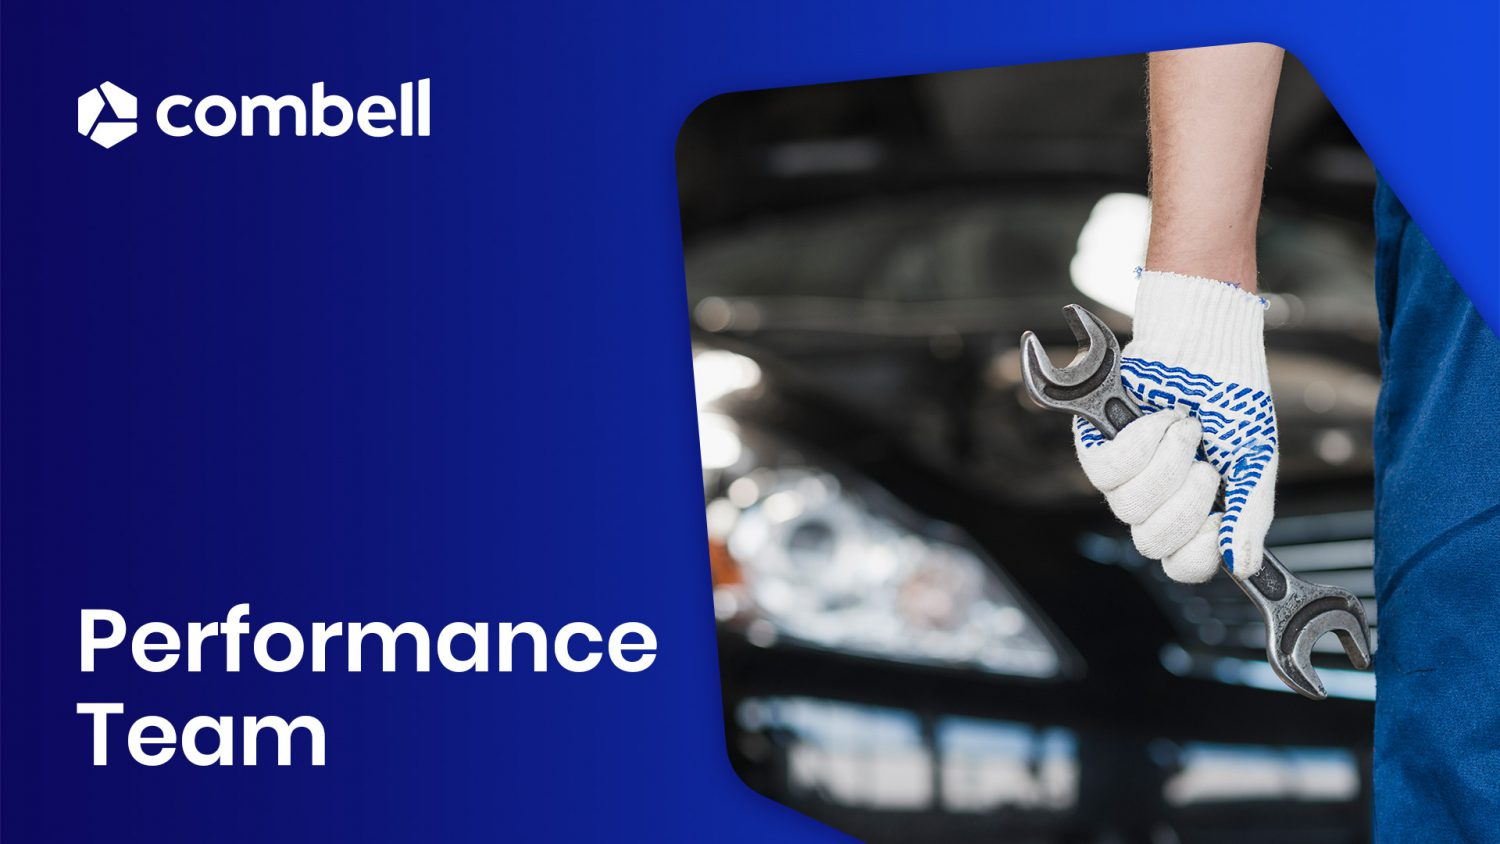 Combell Performance Team